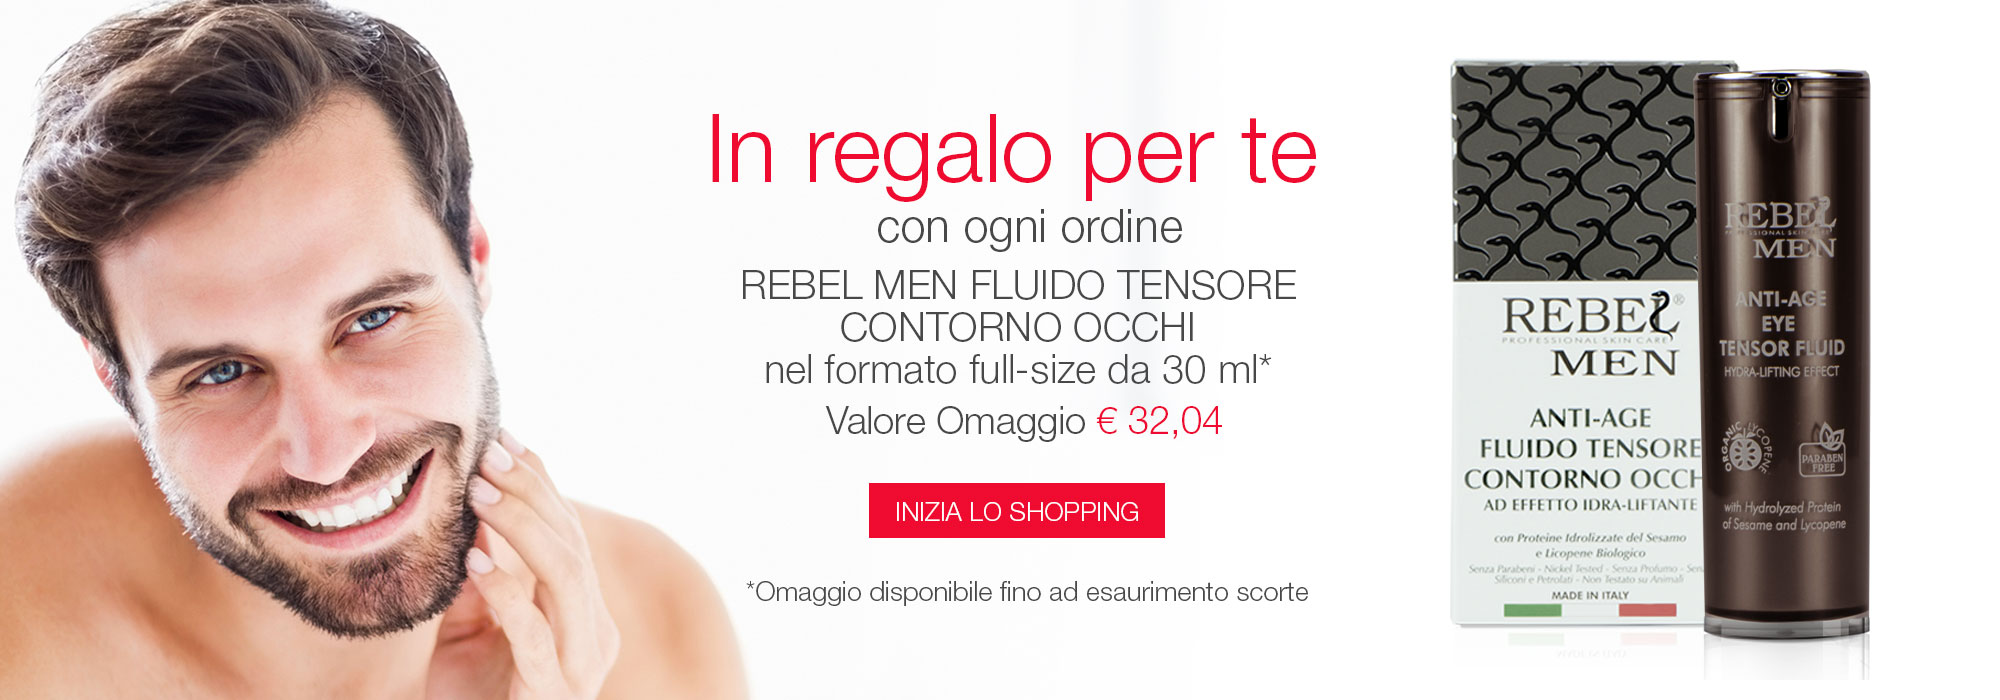 Offerta Rebel Man